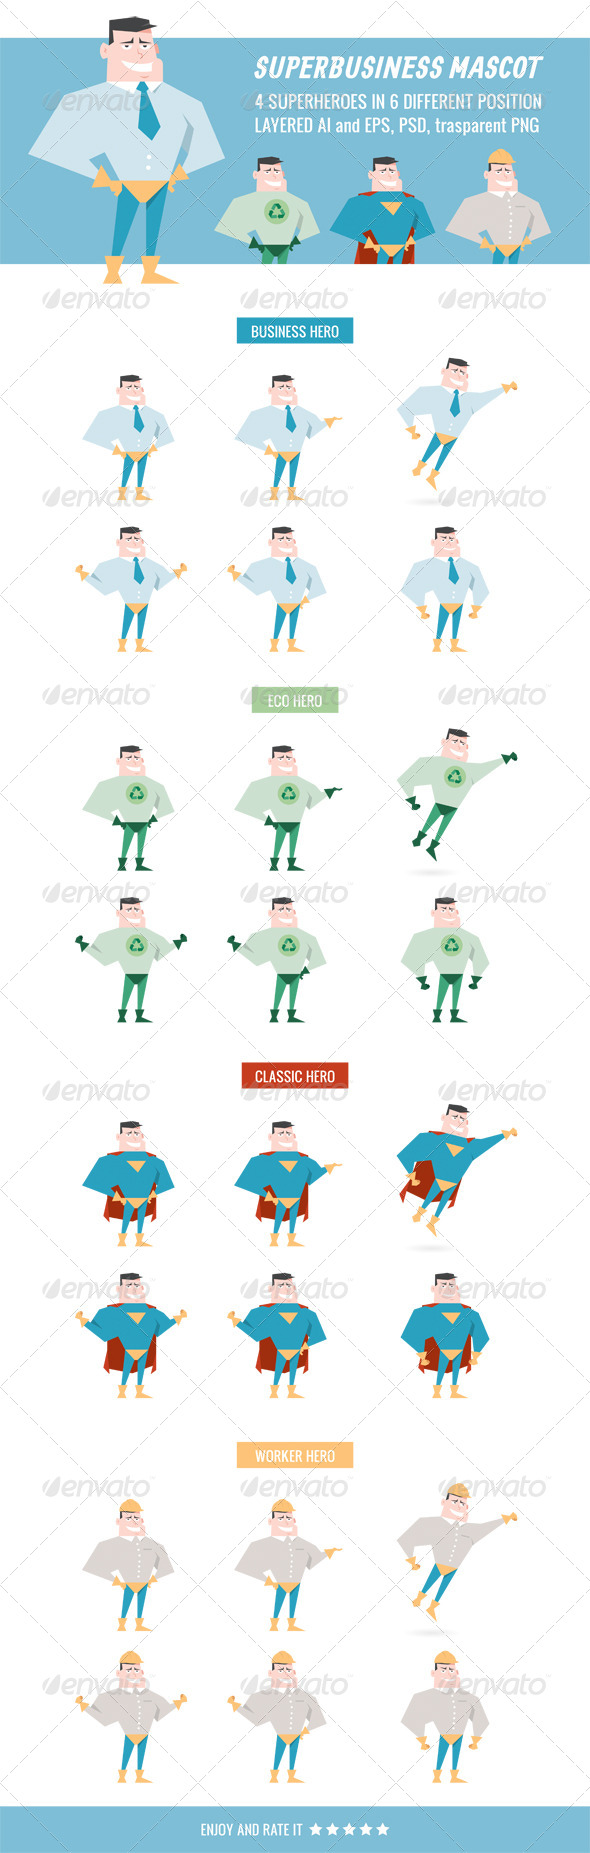 GraphicRiver Superbusiness Mascot 6038267